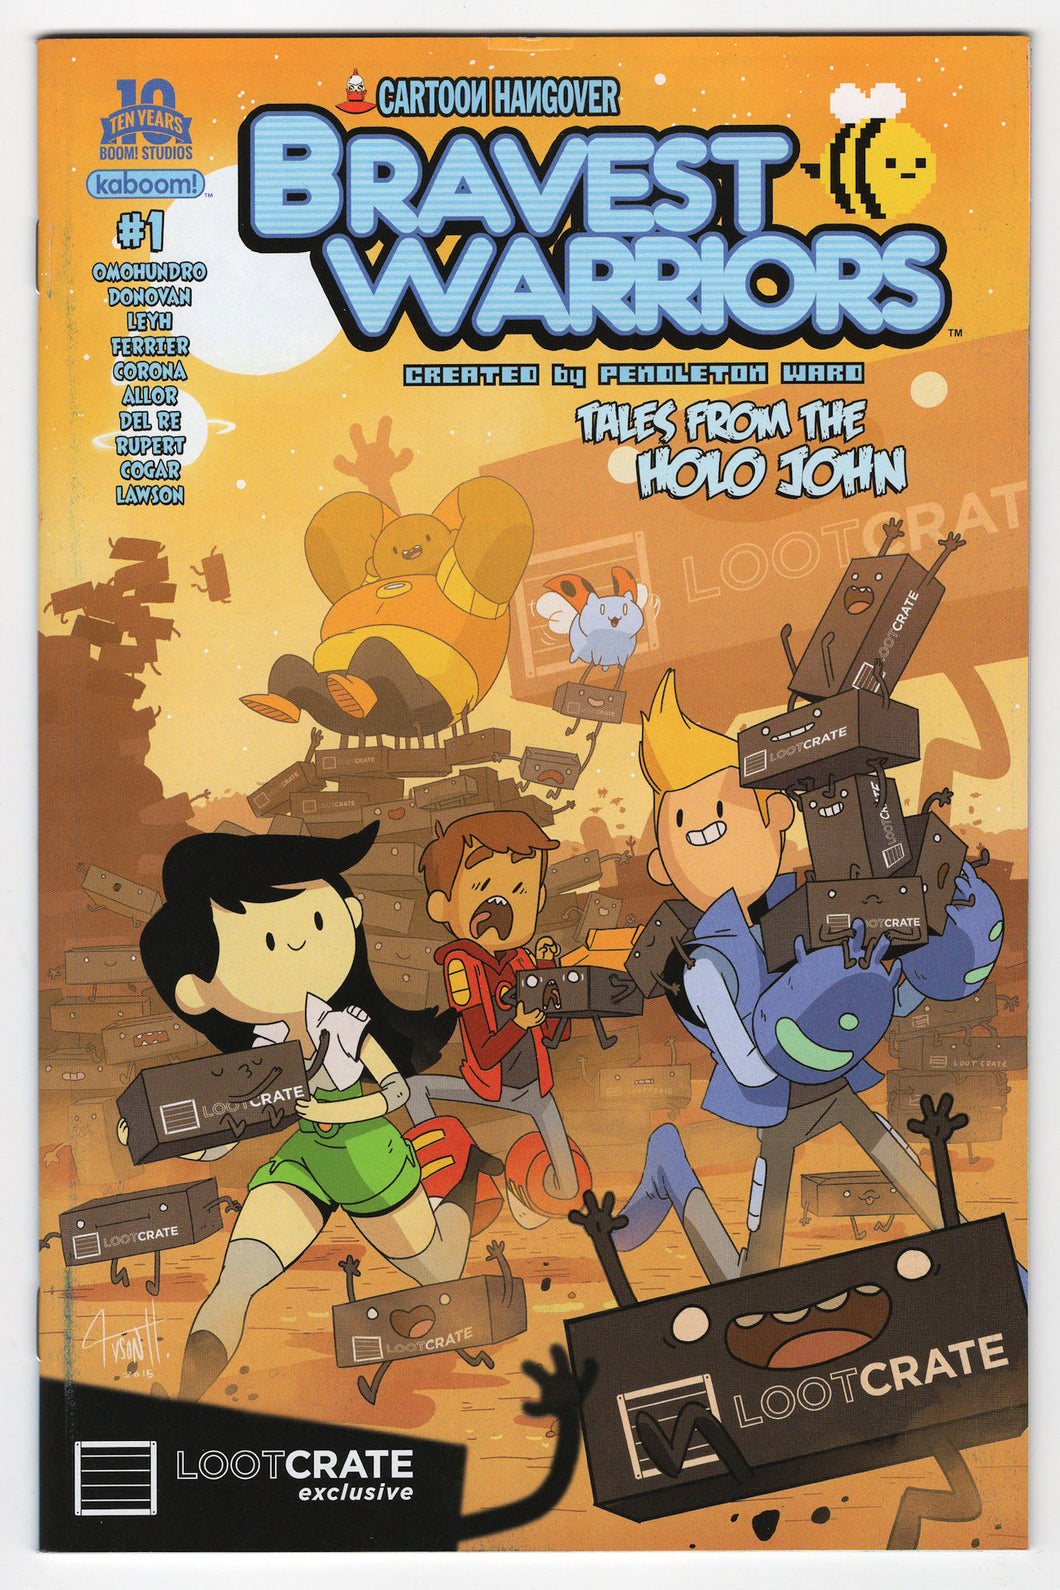 Bravest Warriors Tales From The Holo John #1 Tyson Hesse Loot Crate Variant Cover (2015) Front